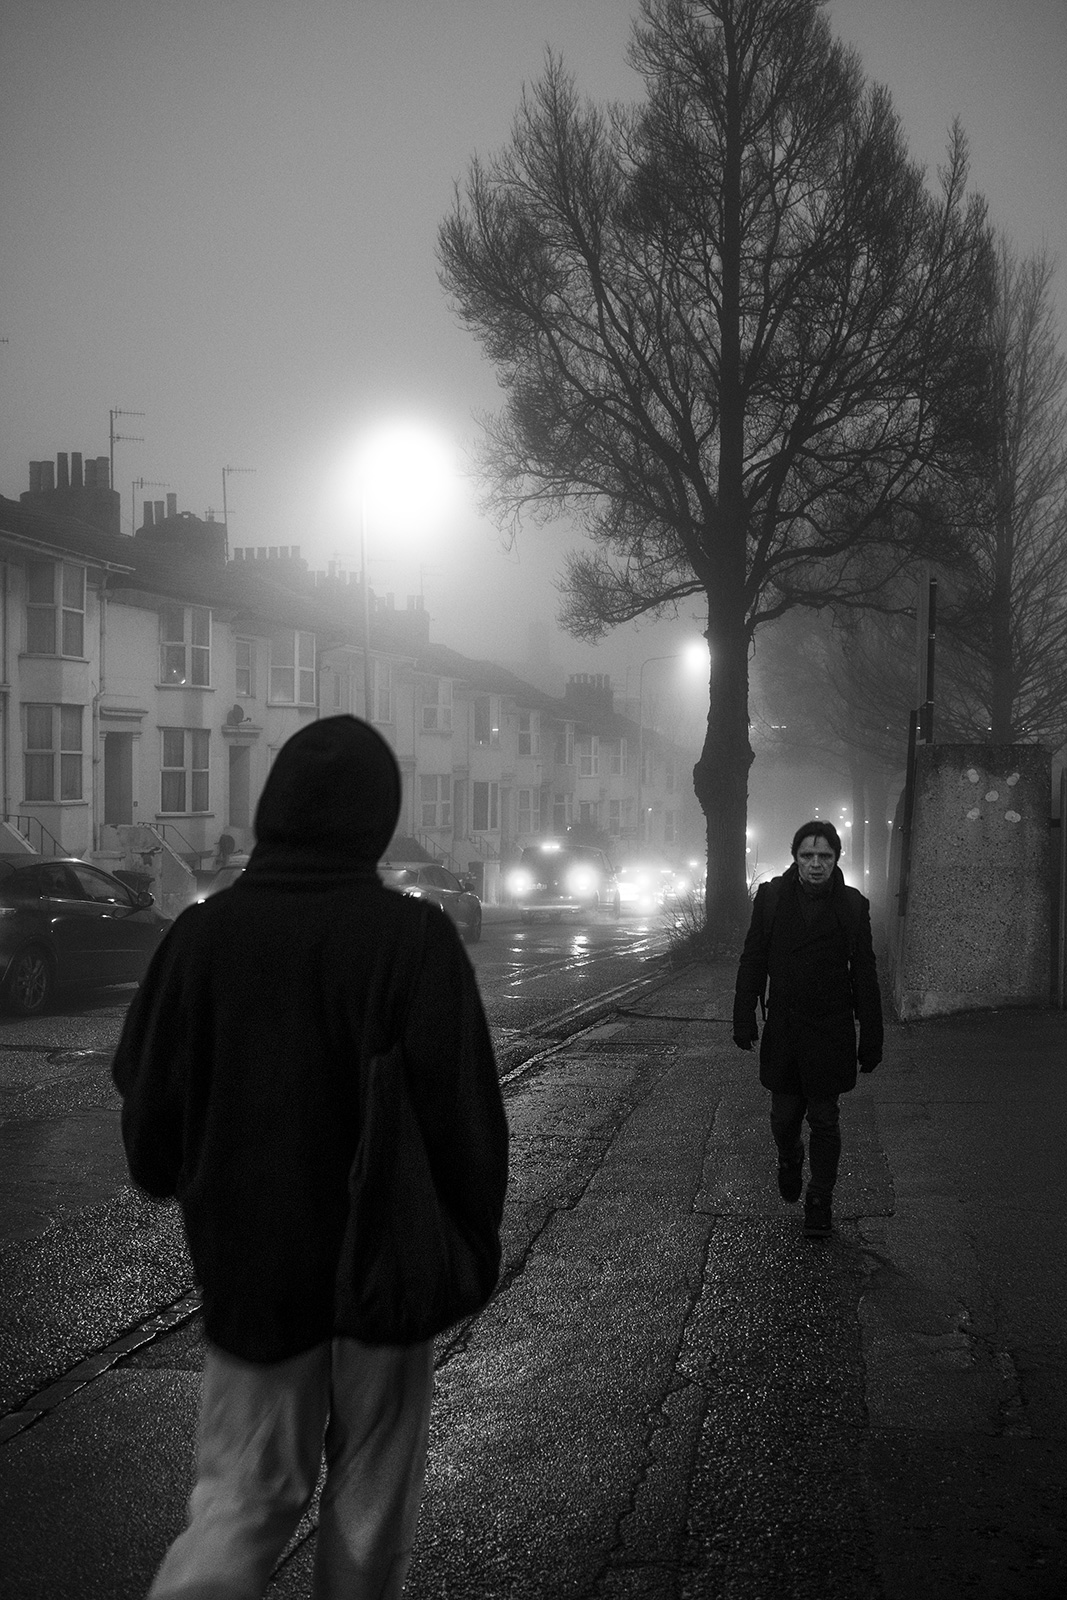 Man walking towards viewer along foggy street at night with silhouetted hooded figure in foreground, black and white documentary street photography portrait Chatham Place Brighton UK © P. Maton 2019 eyeteeth.net